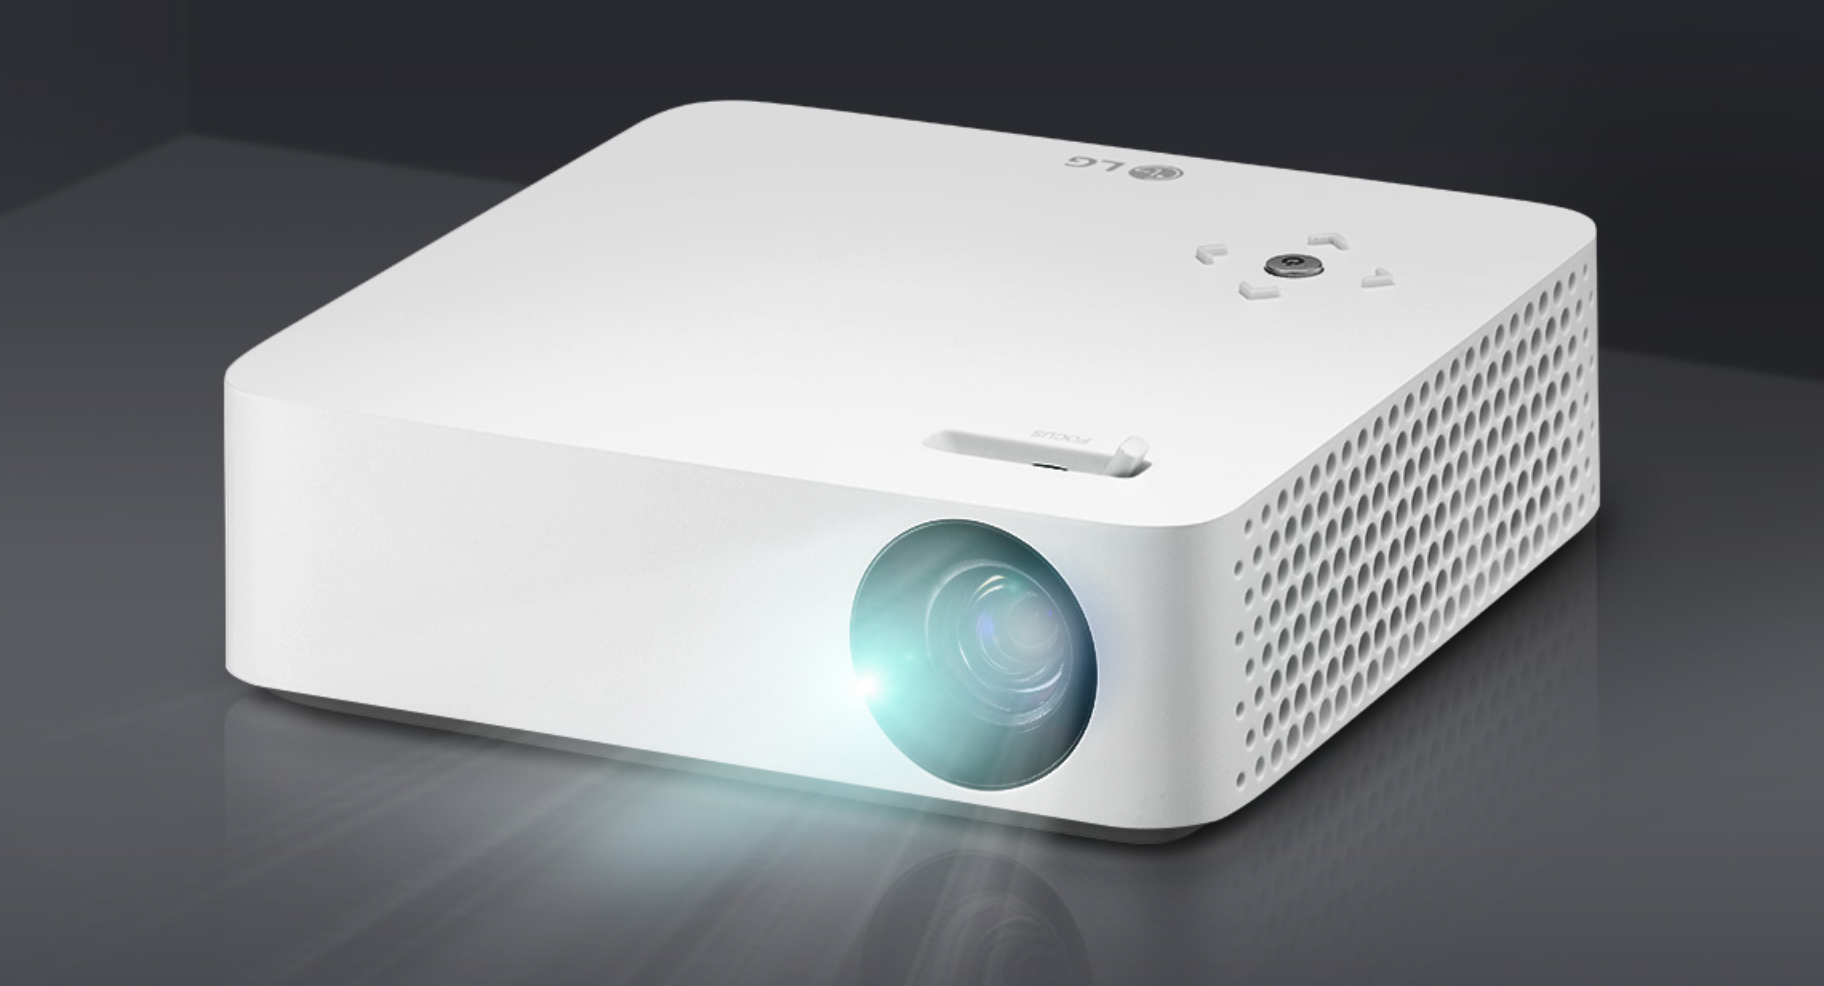 New 100-inch LG CineBeam projector lowers entry level, but don't expect 4K | Trusted Reviews